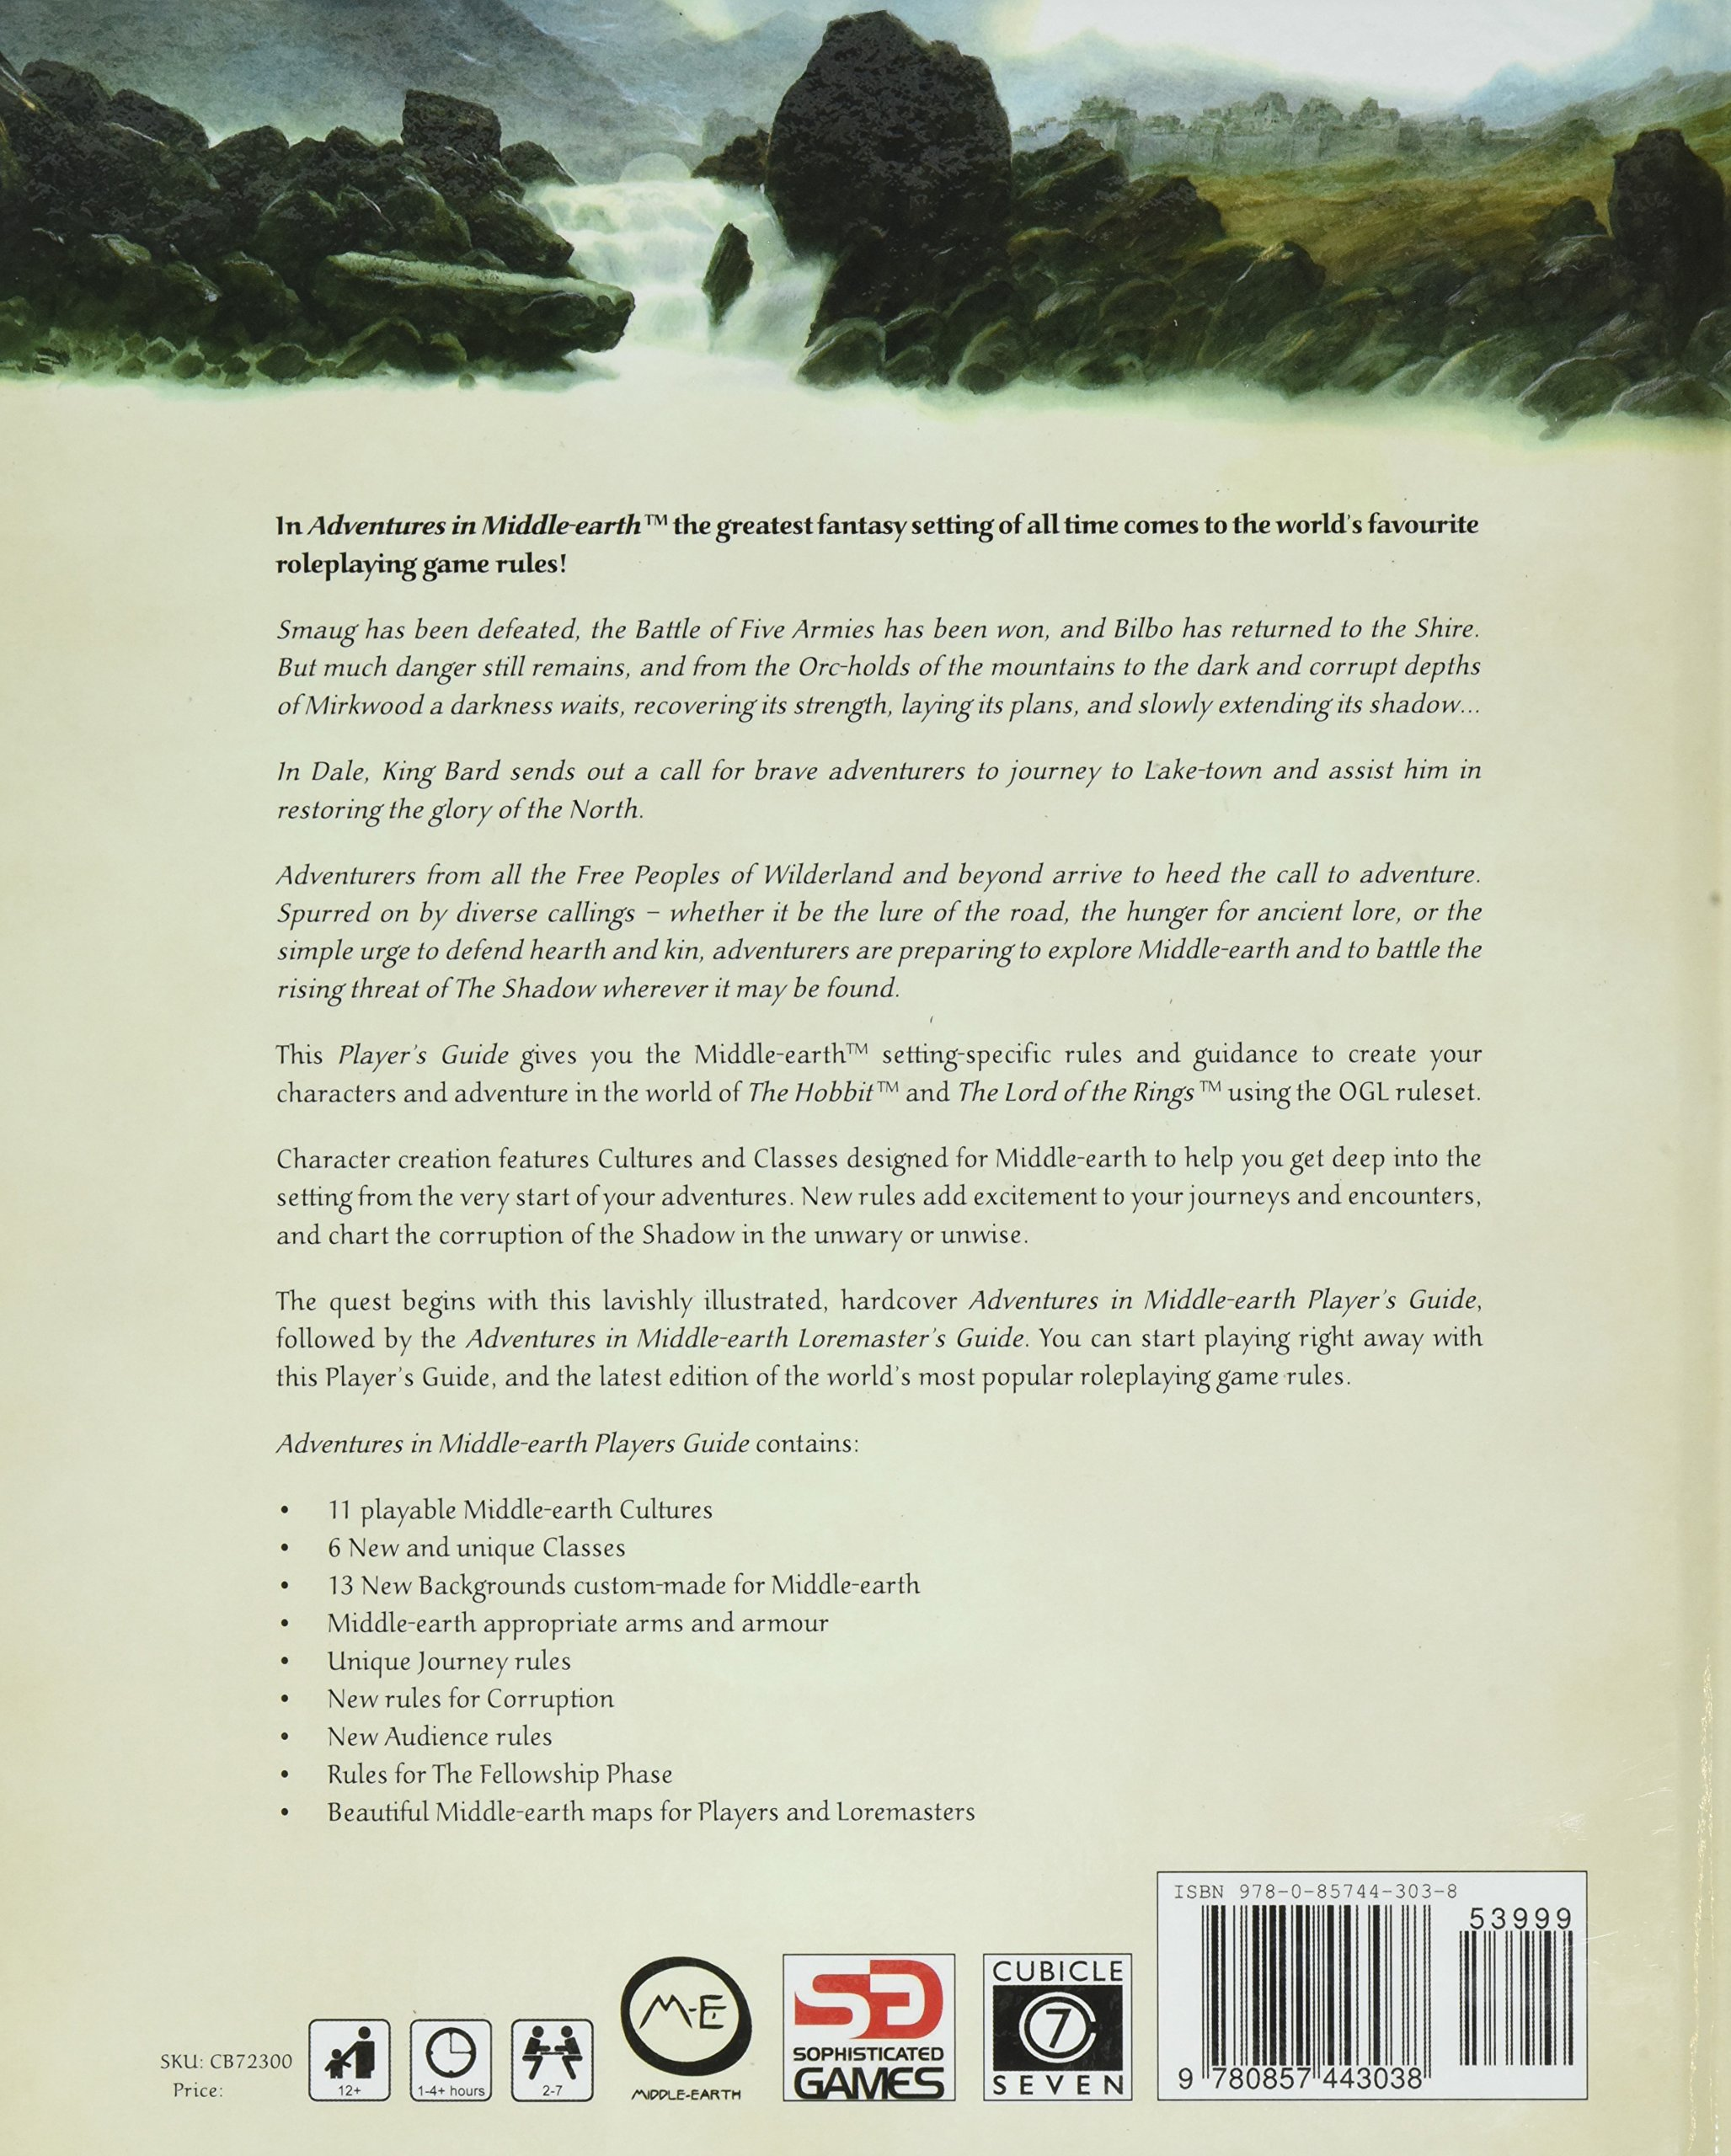 amazon adv in middle earth players gd cubicle 7 reference